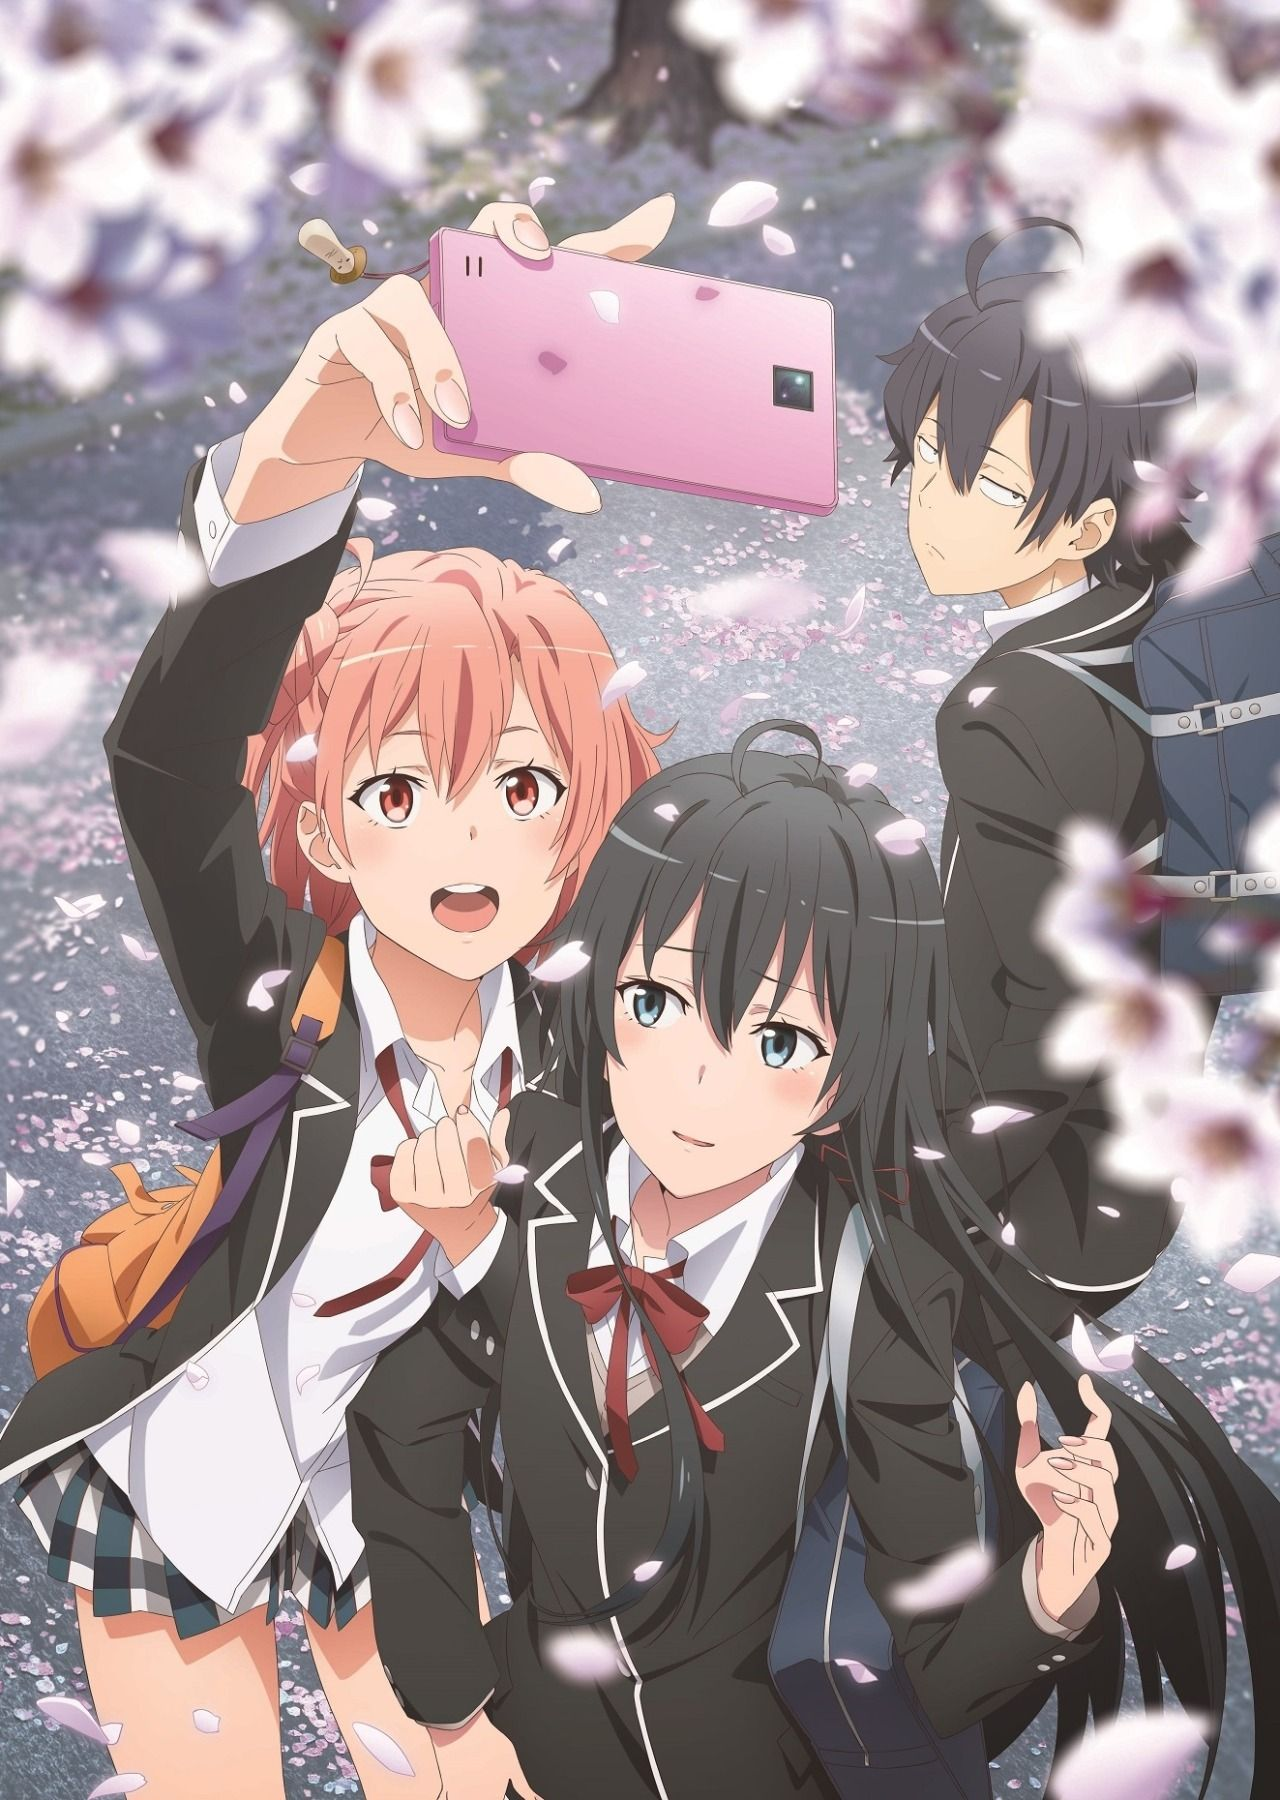 pkjd The third season of the Oregairu TV anime series